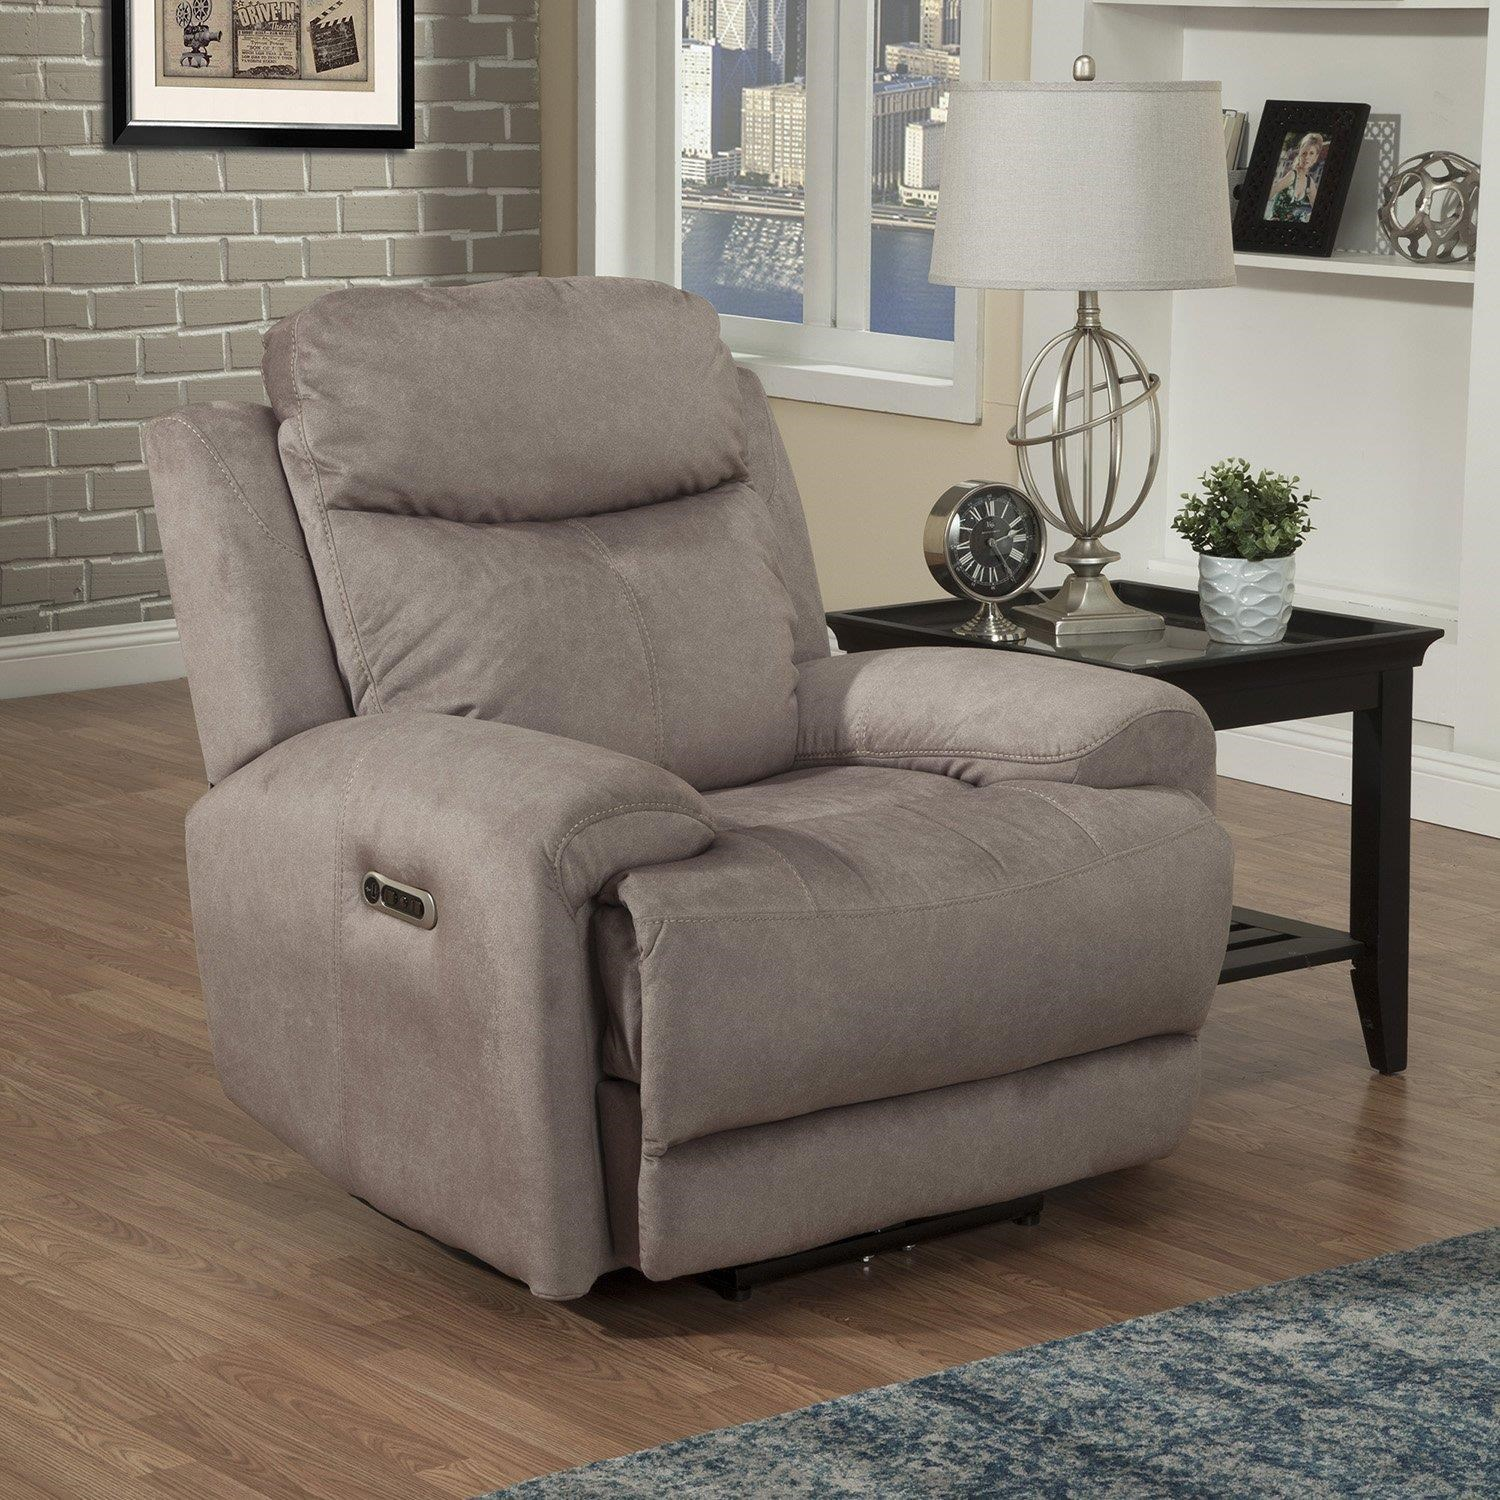 Power Recliner and Headrest W/ USB